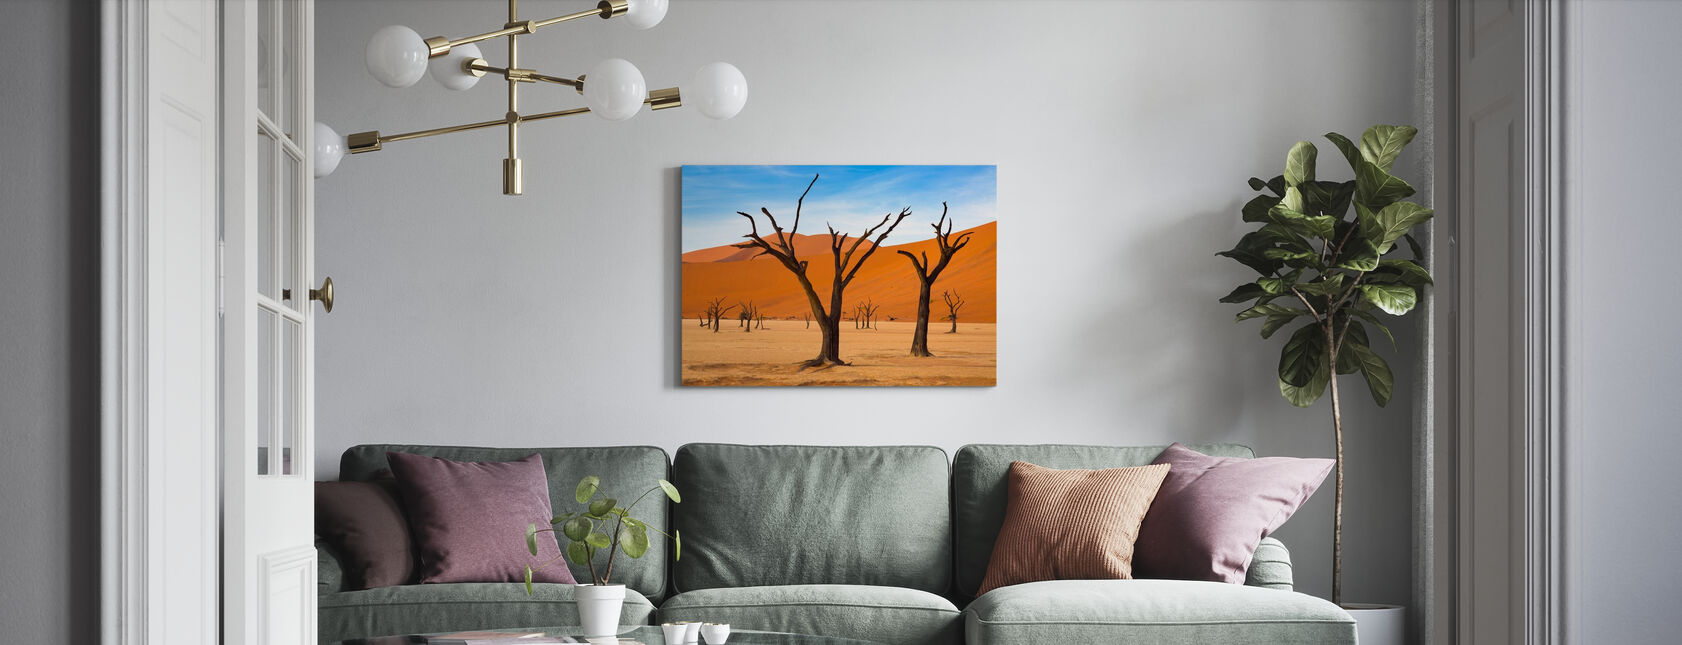 Deadvlei with Dead Trees - Canvas print - Living Room